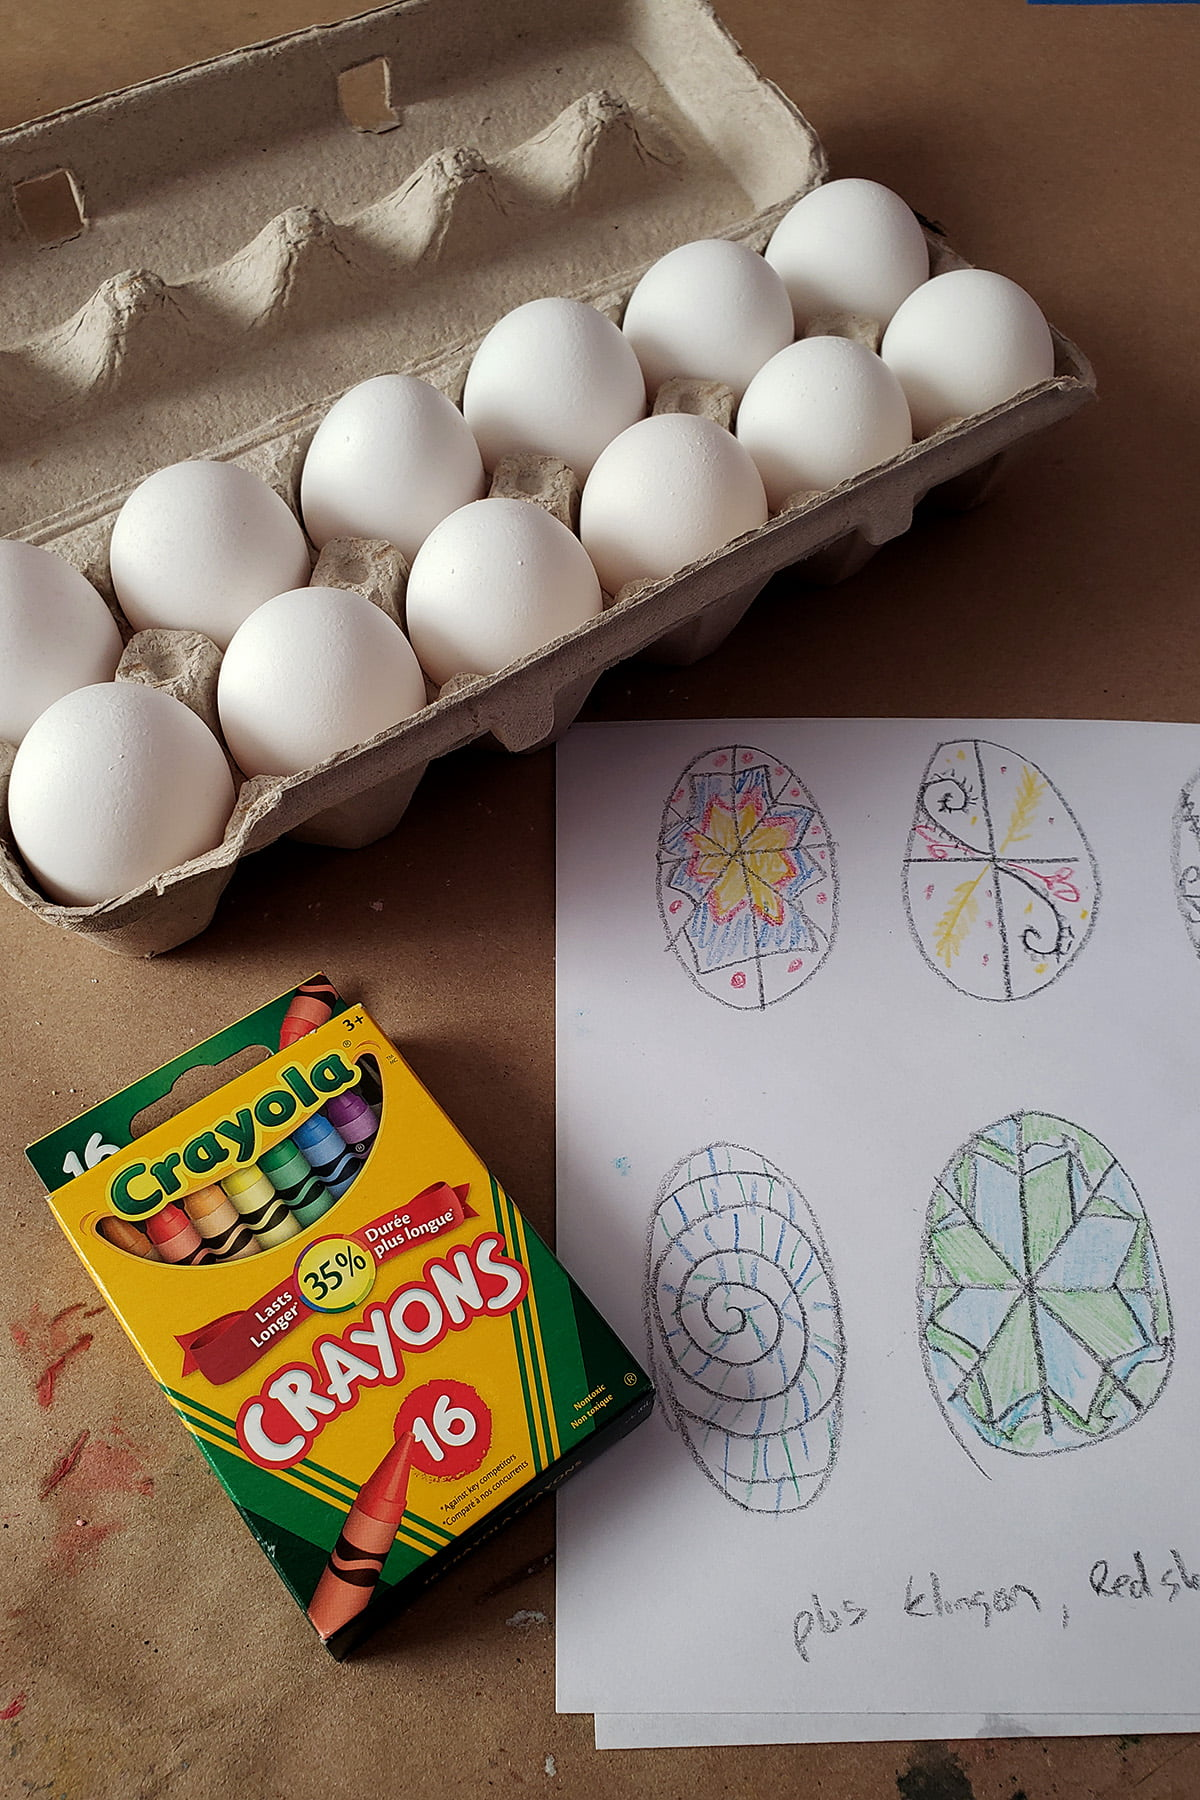 A carton of 12 eggs is shown next to a pack of crayons and a paper with sketches of egg designs on it.